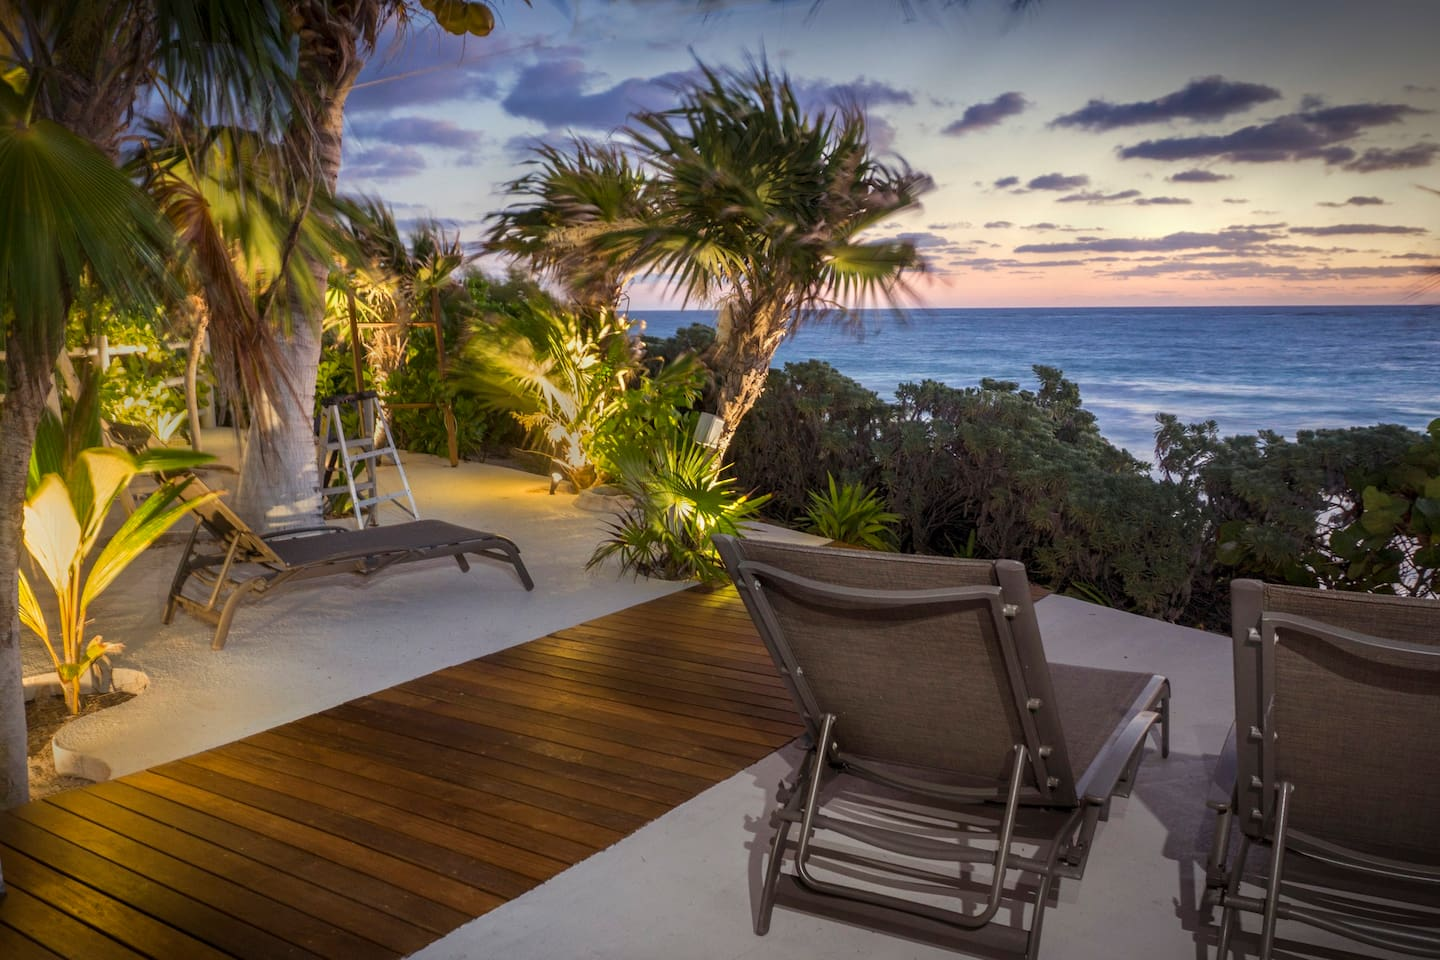 The ocean front terrace is where you can enjoy the cool ocean breeze right at your doorstep, Star Gaze or have a refreshing drink under the Caribbean sky. The view is amazing! Come relax and take the vacation you deserve.